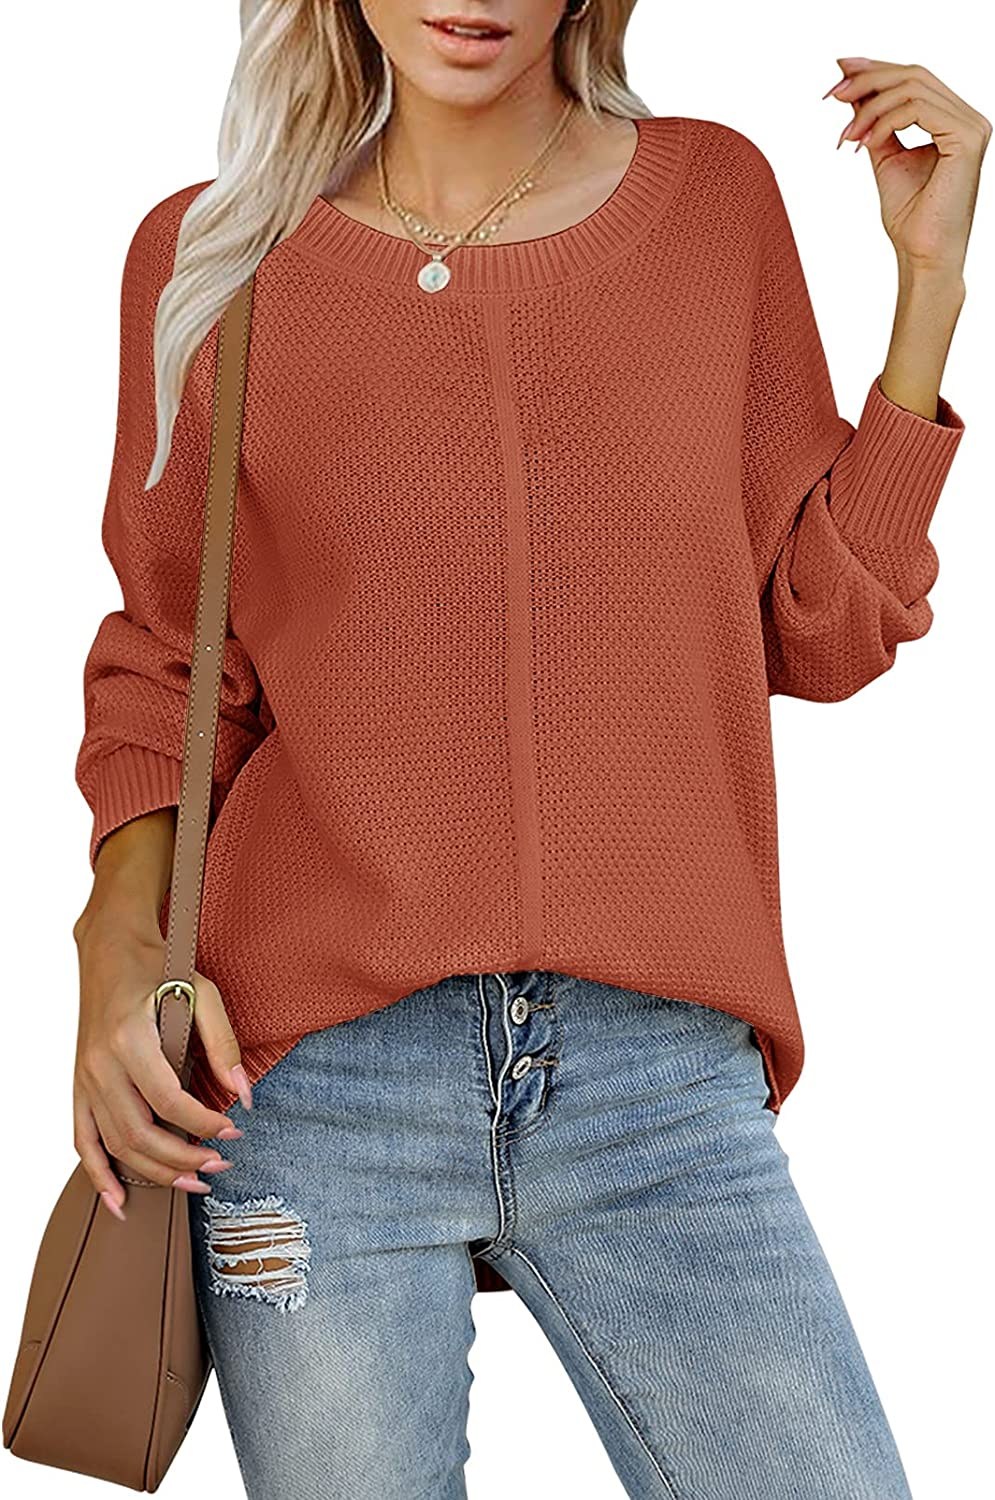 TECREW Womens Long Sleeve Crew Neck Solid Color Sweater Casual Loose Knit Pullover Jumper